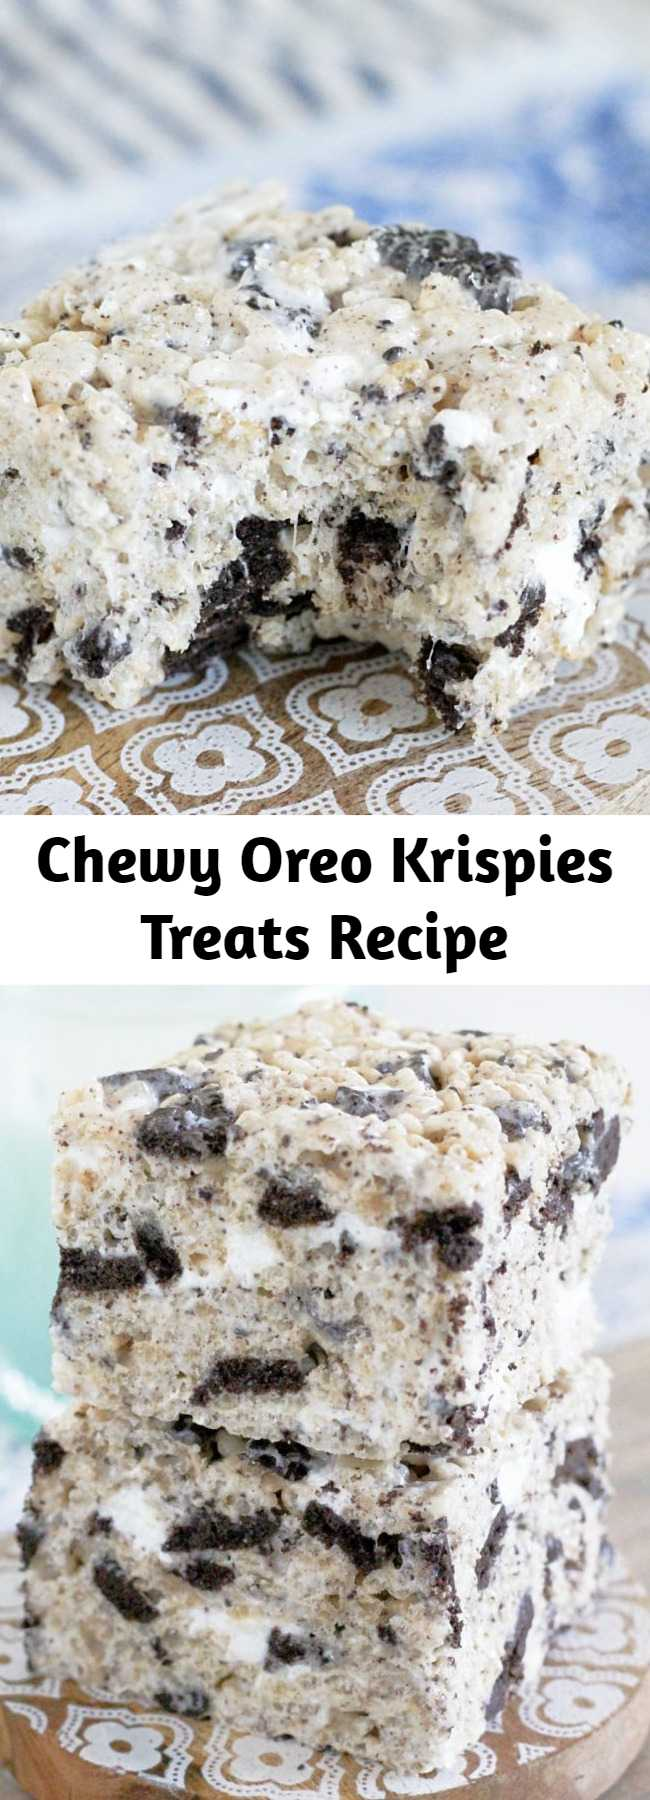 Chewy Oreo Krispies Treats Recipe - This is the classic Krispie treat recipe on steroids with the addition of crushed OREO cookies. Thick, chewy and completely irresistible. #ricekrispietreats #oreokrispies